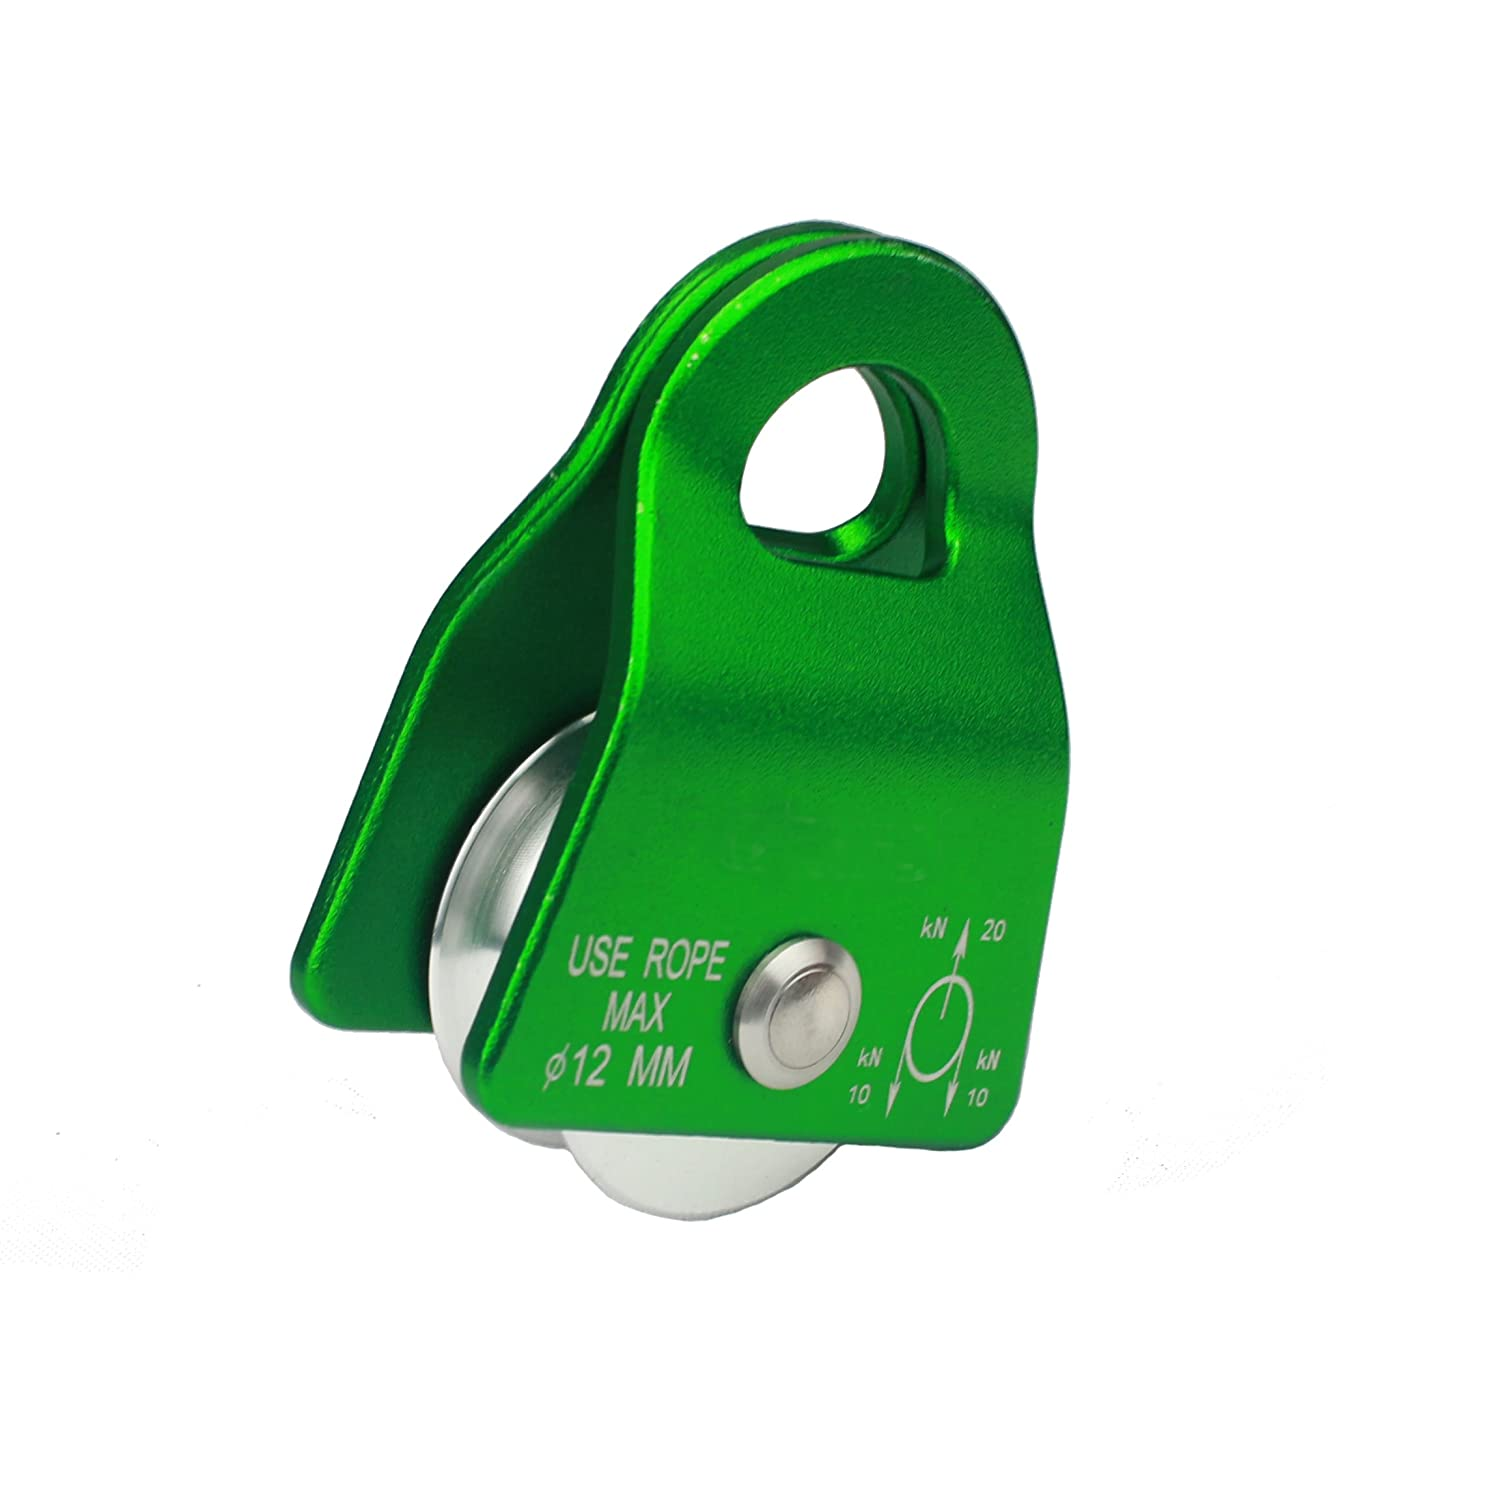 Geelife 20KN Climbing Micro Pulley General Purpose Aluminum Rope Pulley for Rescue//Aloft Work//Rappelling Etc.